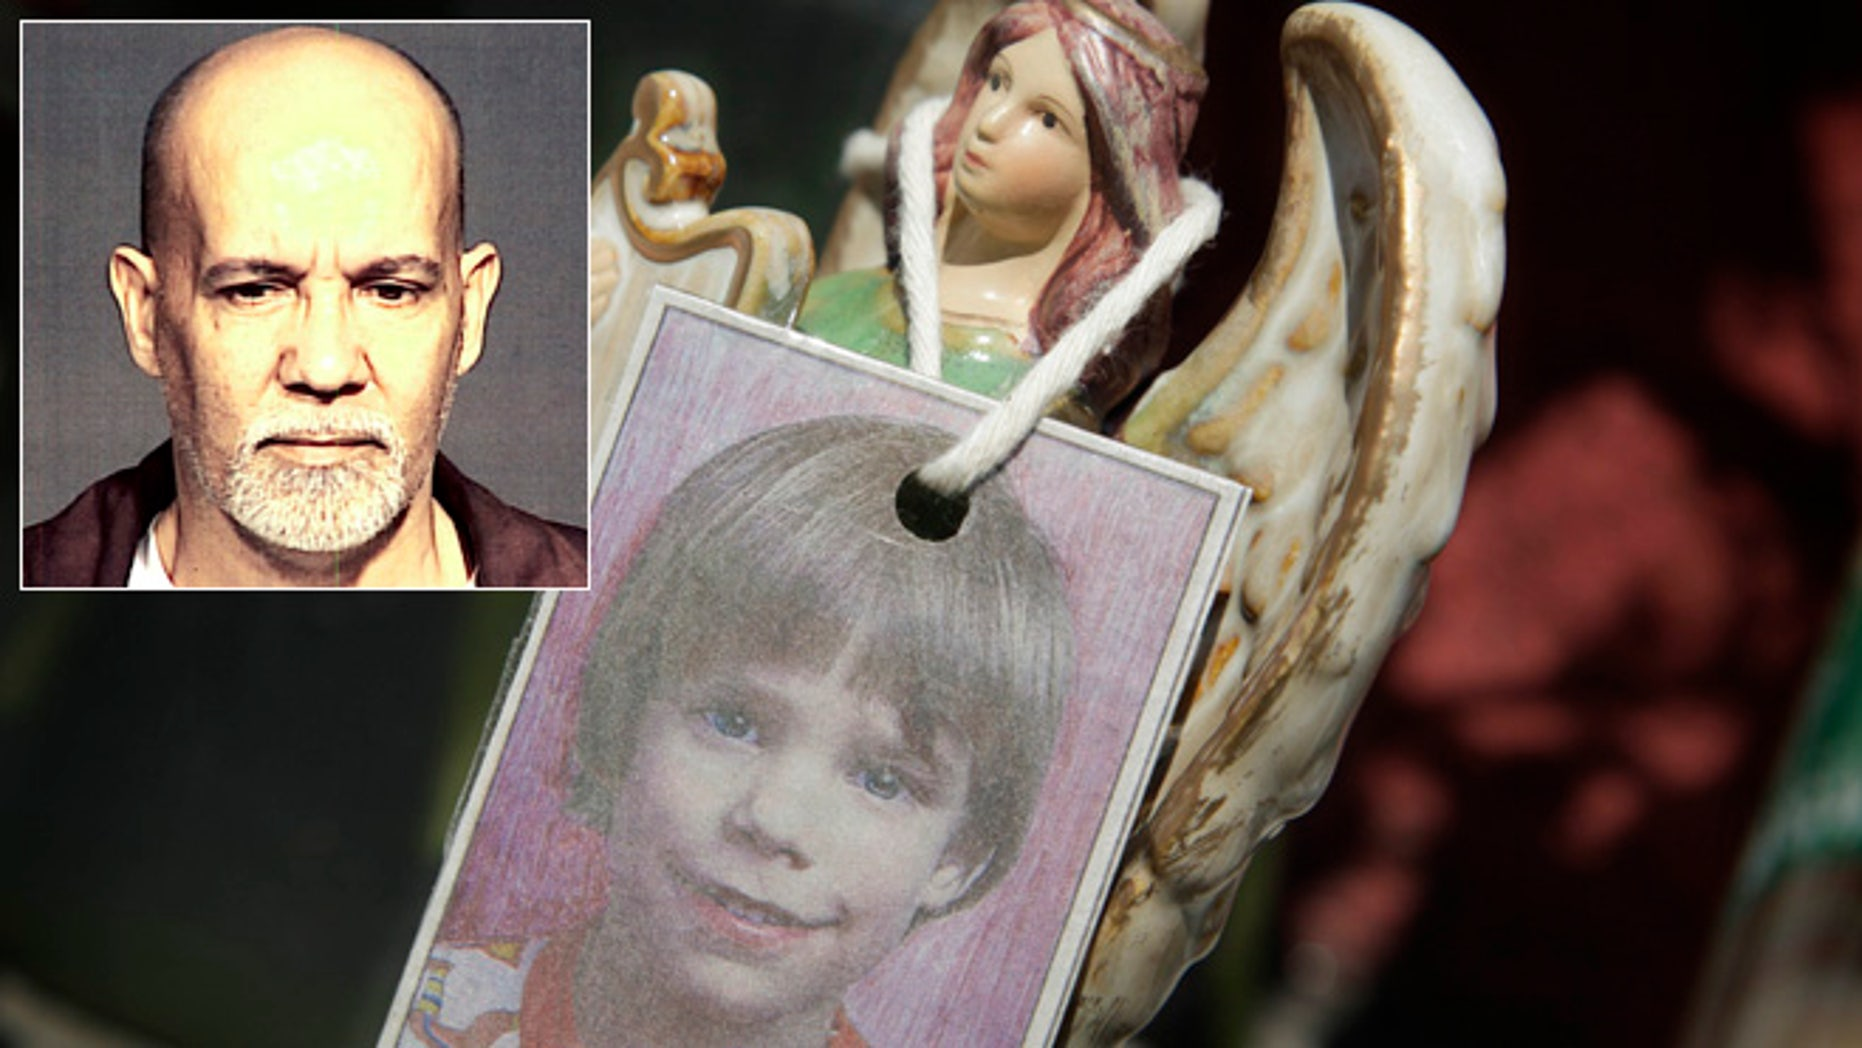 This May 2012 photo obtained by the Associated Press shows Pedro Hernandez, who has confessed to killing Etan Patz in 1979.